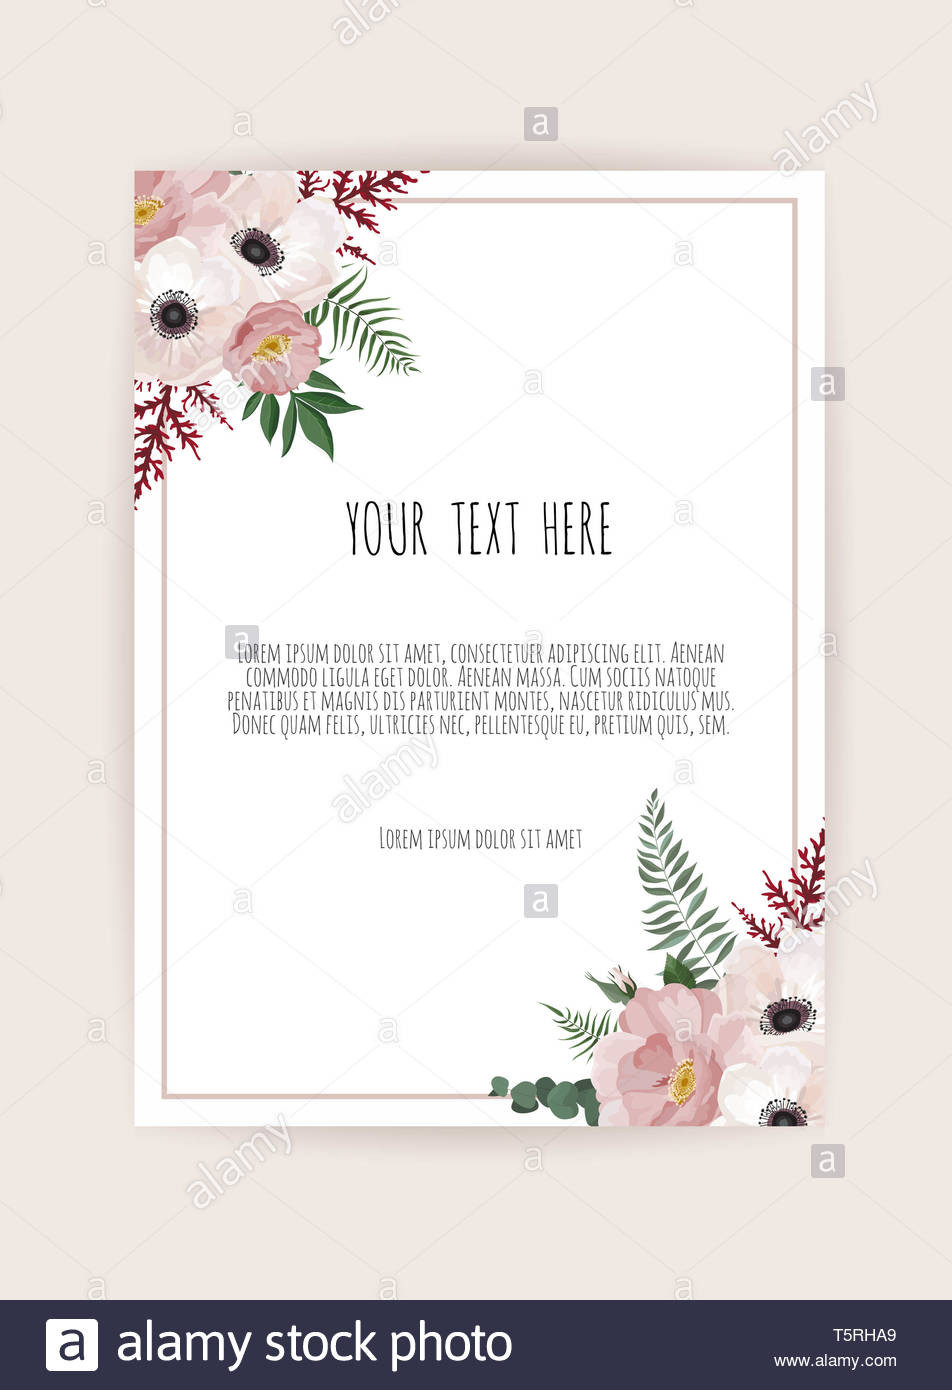 Wedding Information Cards Template